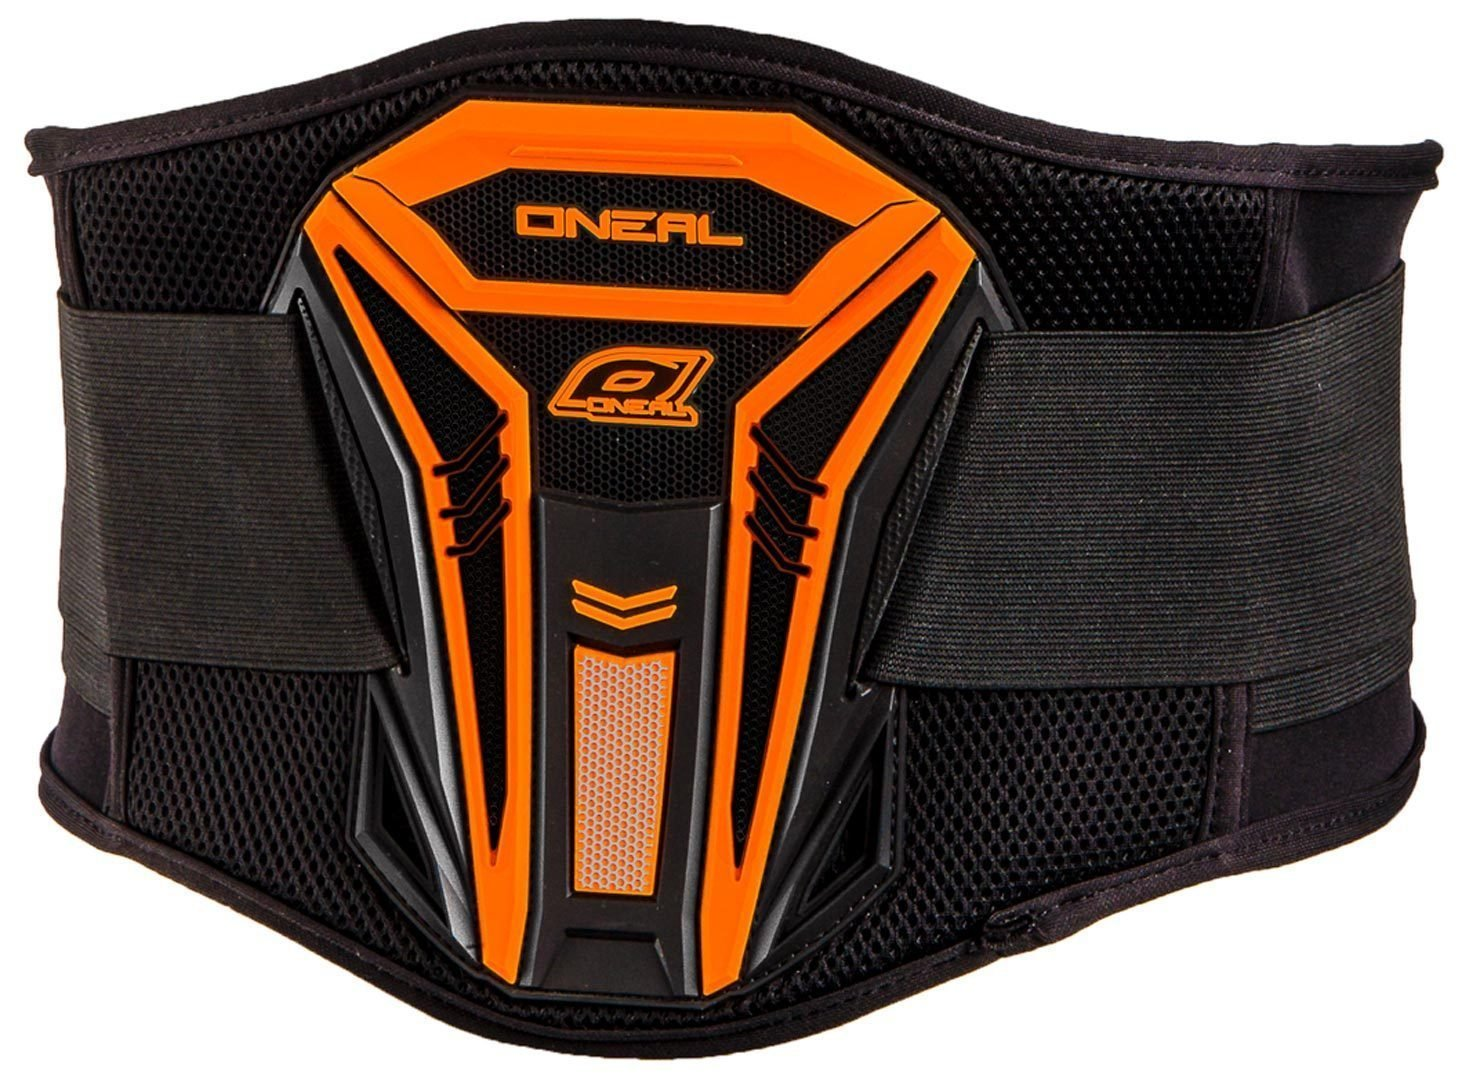 O Neal Pxr Kidney Belt Kidney Protection Large/X Large Orange